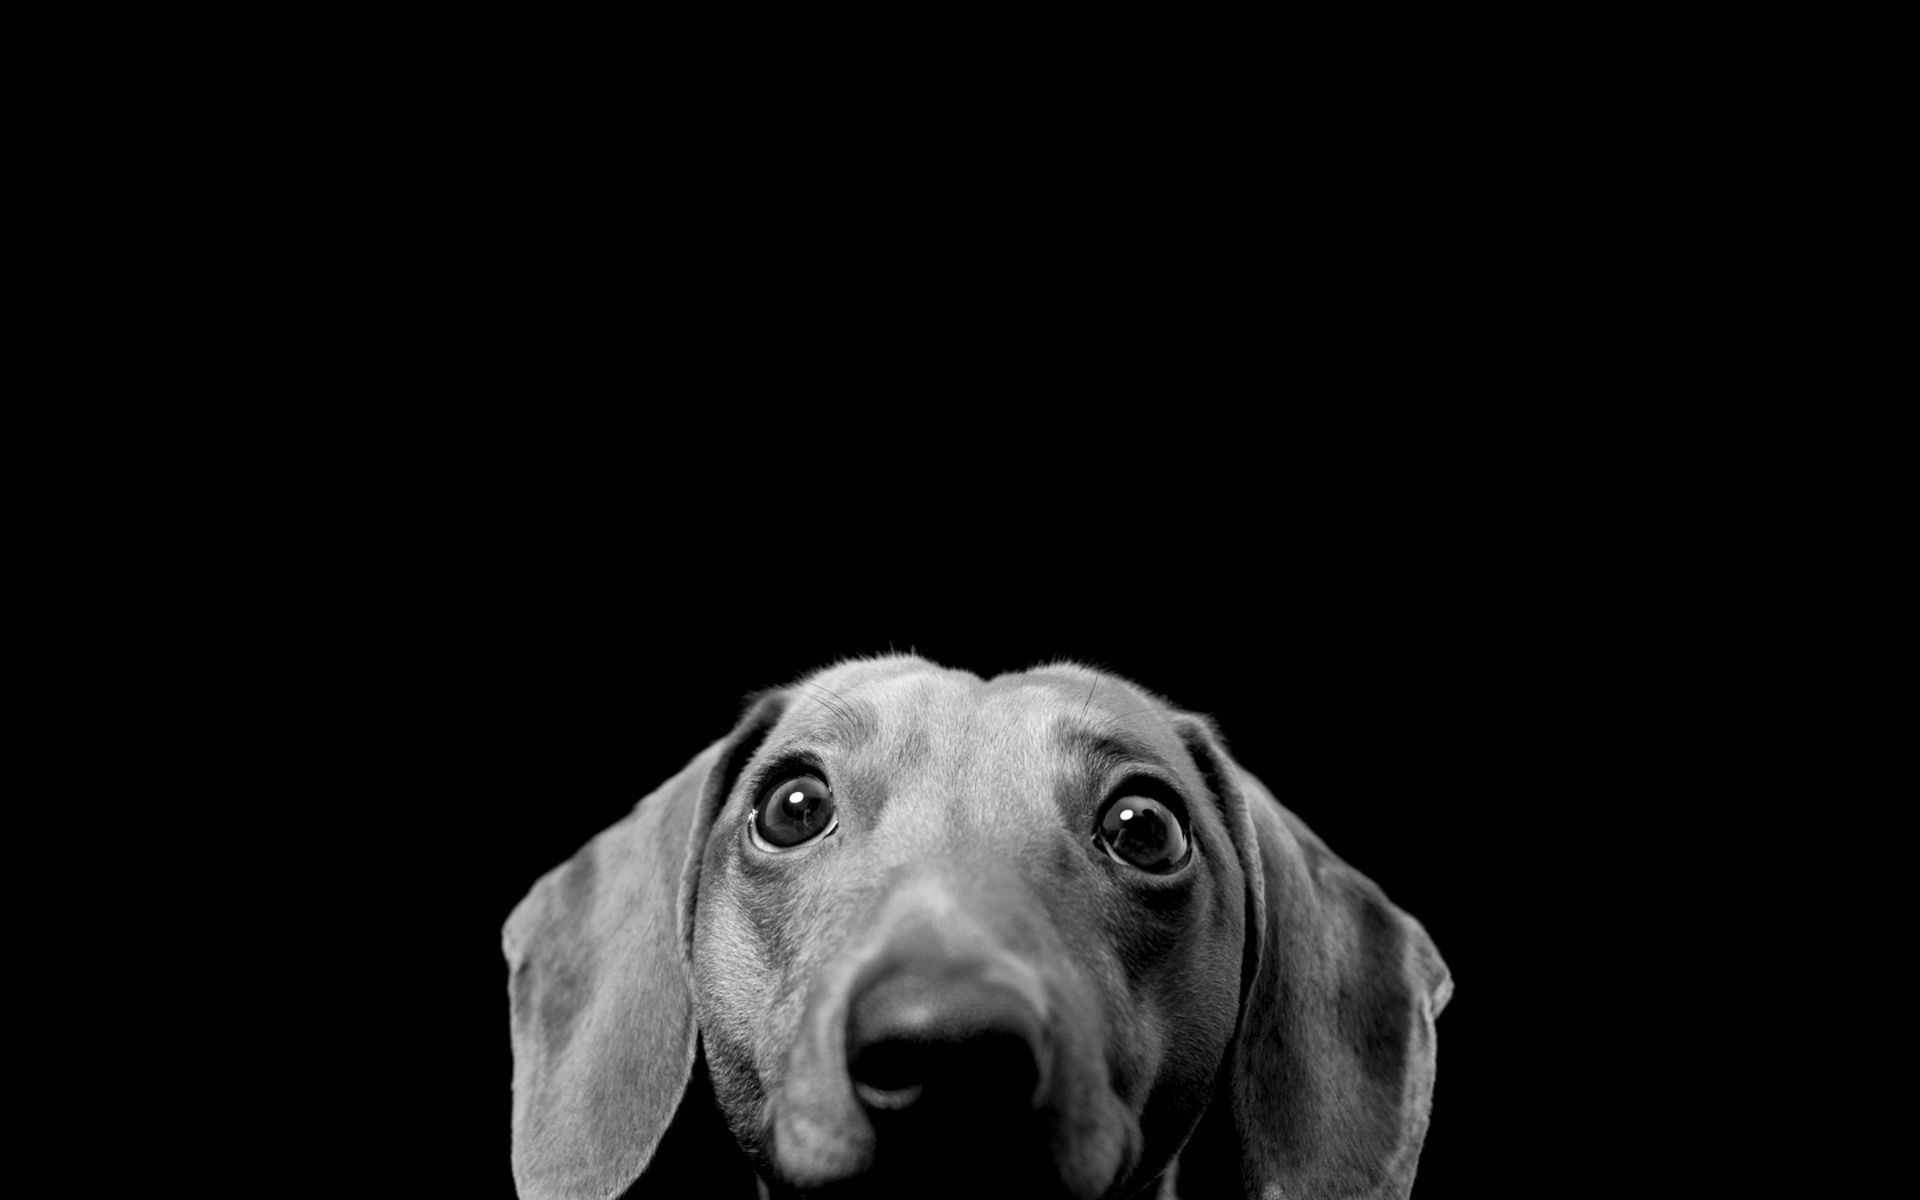 1920x1200 Pin by Brankica on Sweet animals <3 | Dog wallpaper, Funny dog ...